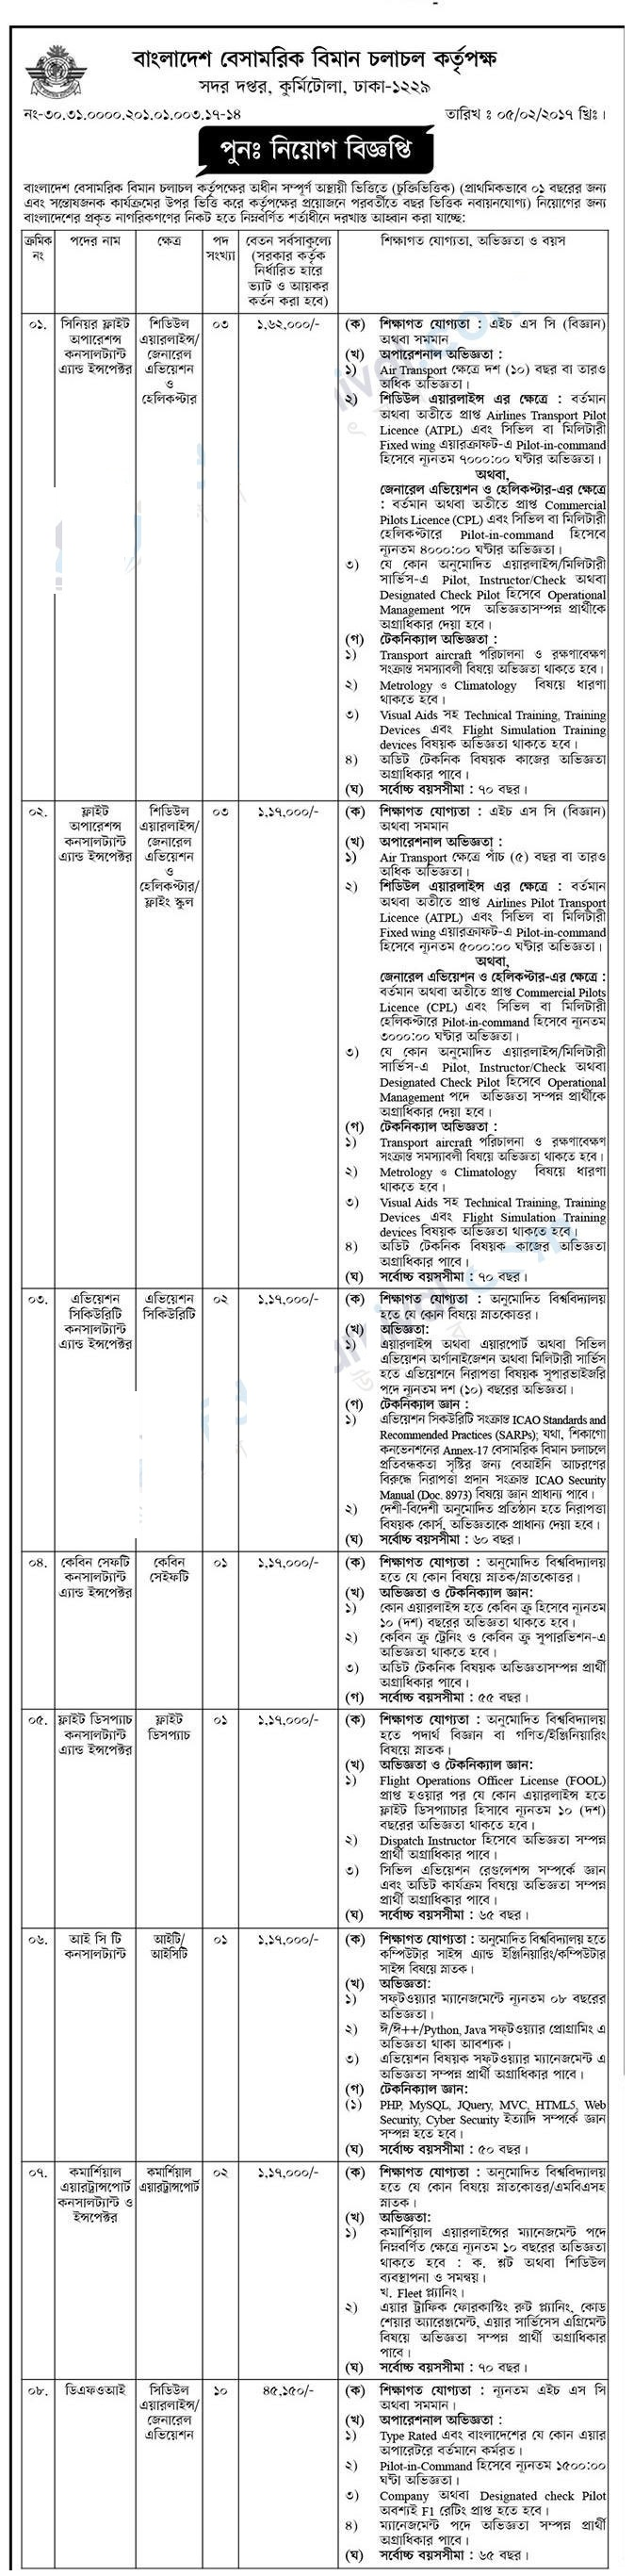 Civil Aviation Authority, Bangladesh Job Circular 2017